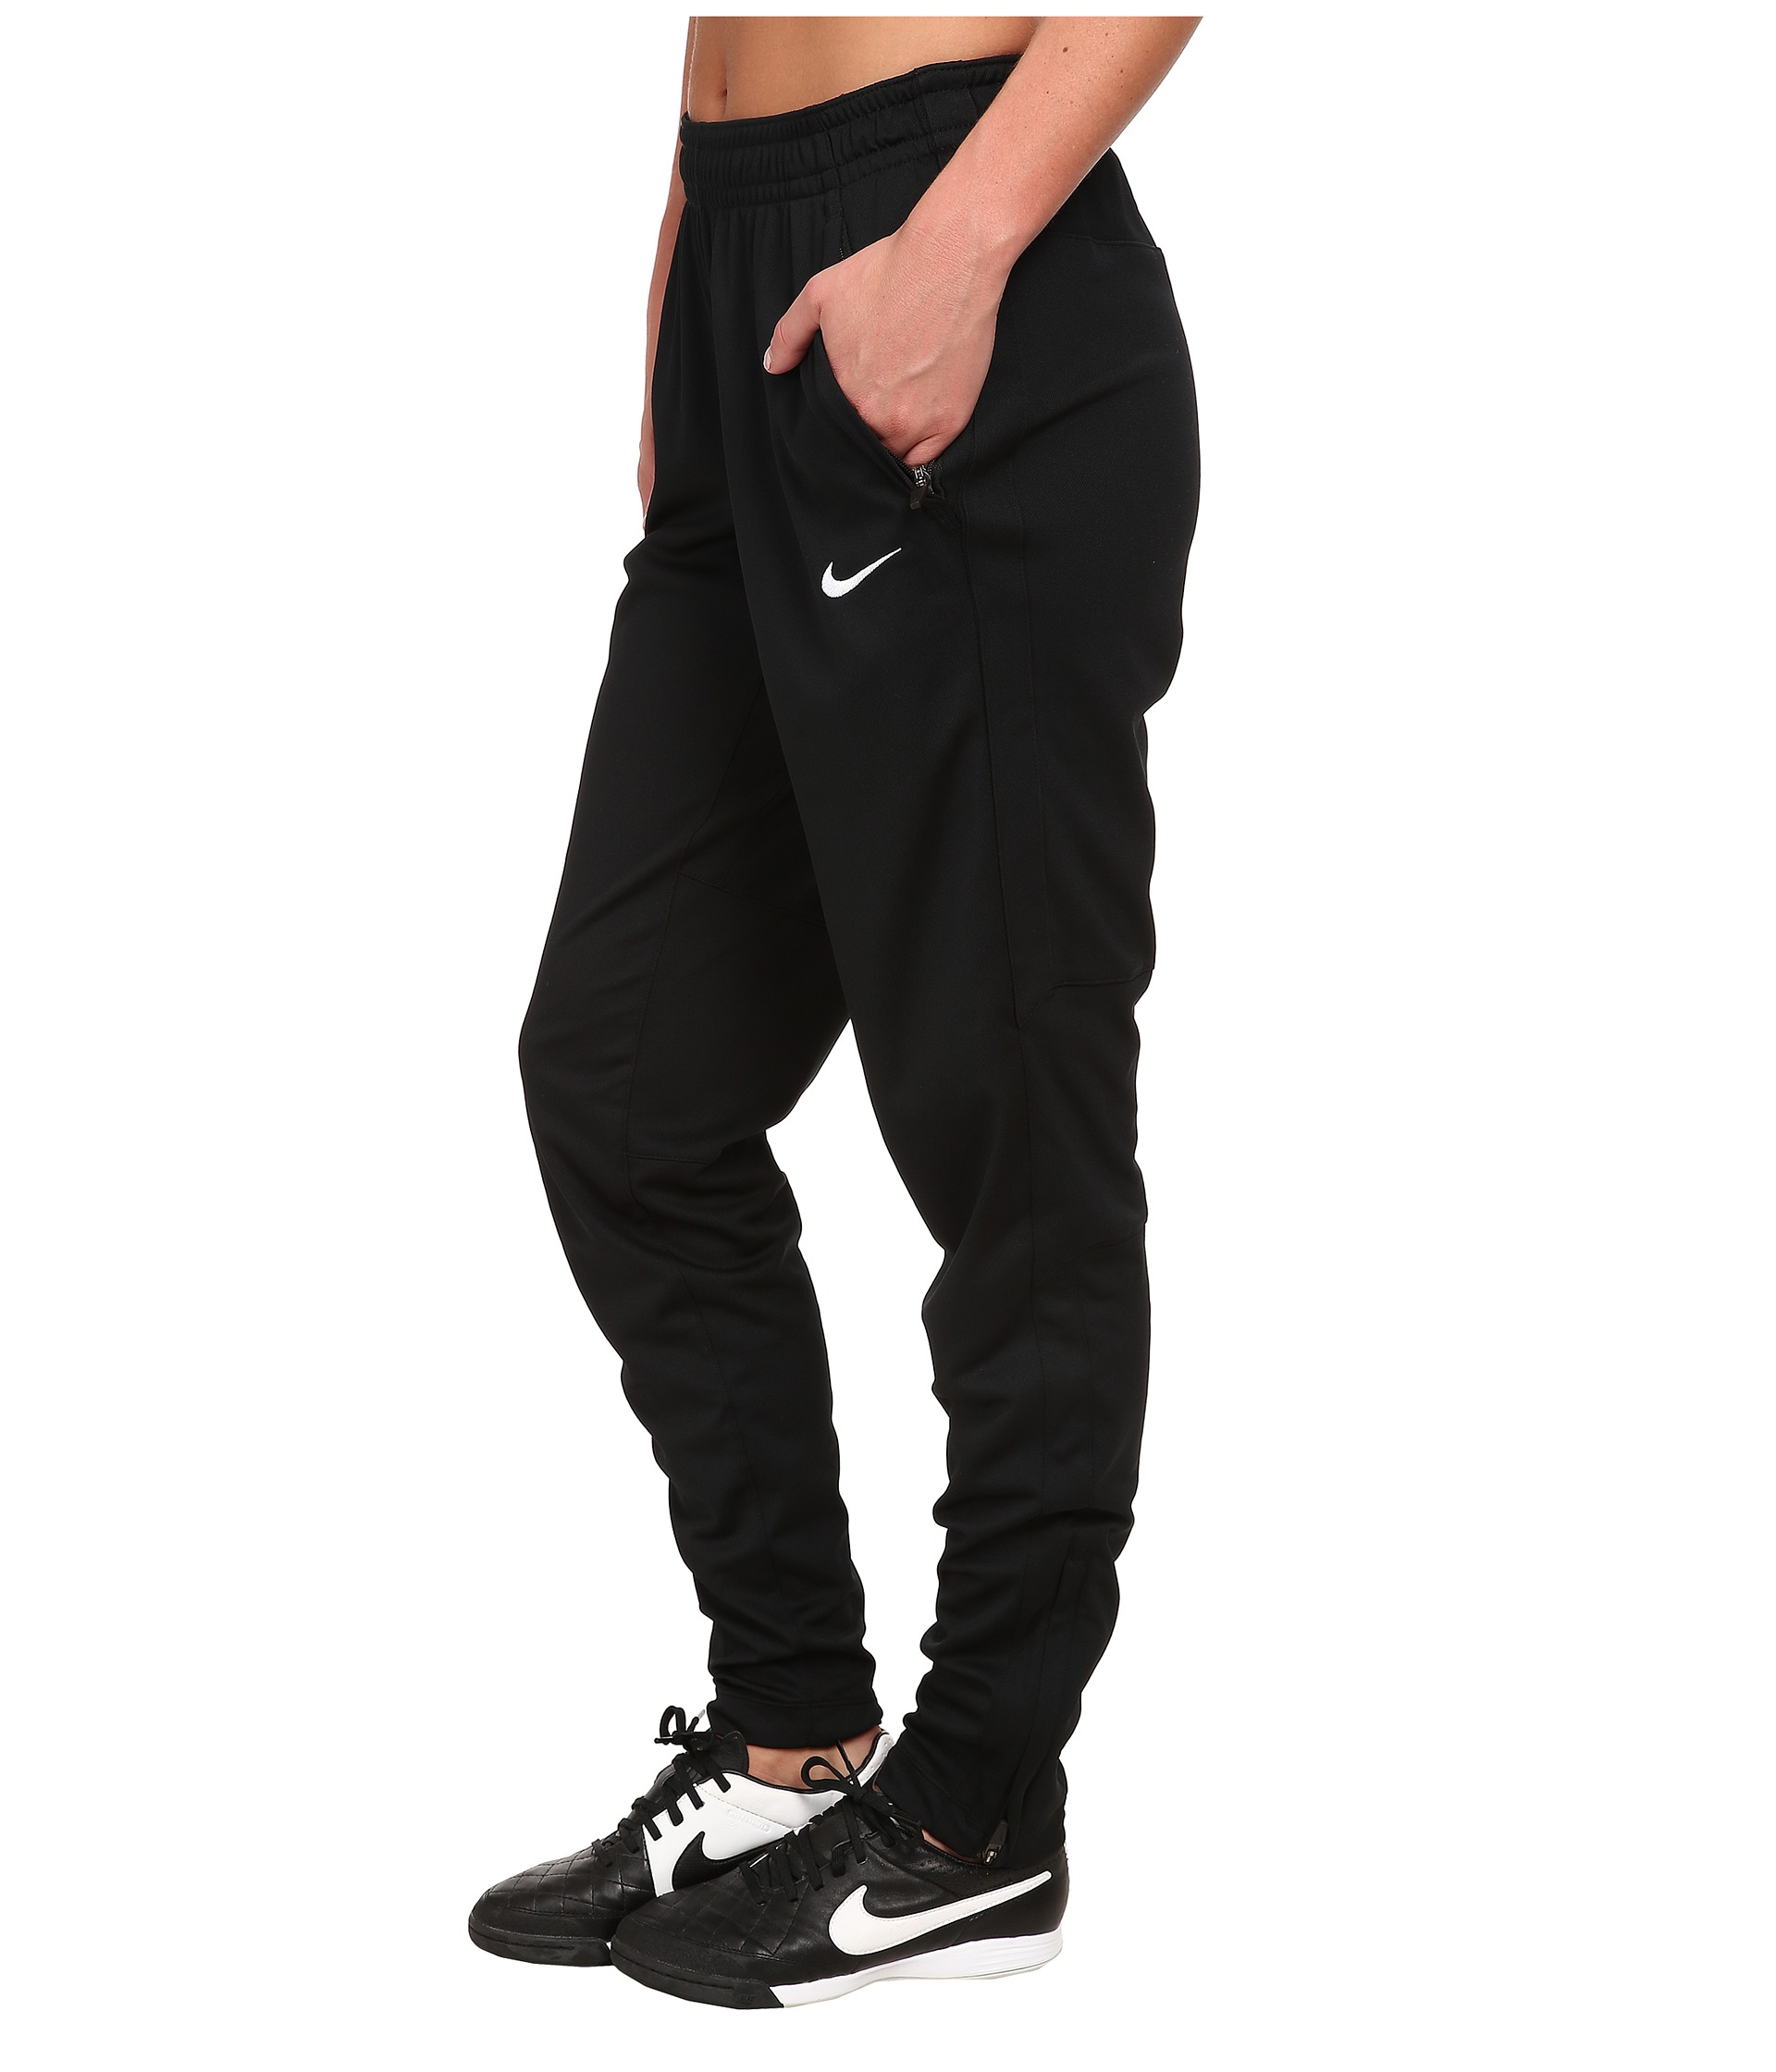 nike academy knit womens soccer pants with fantastic